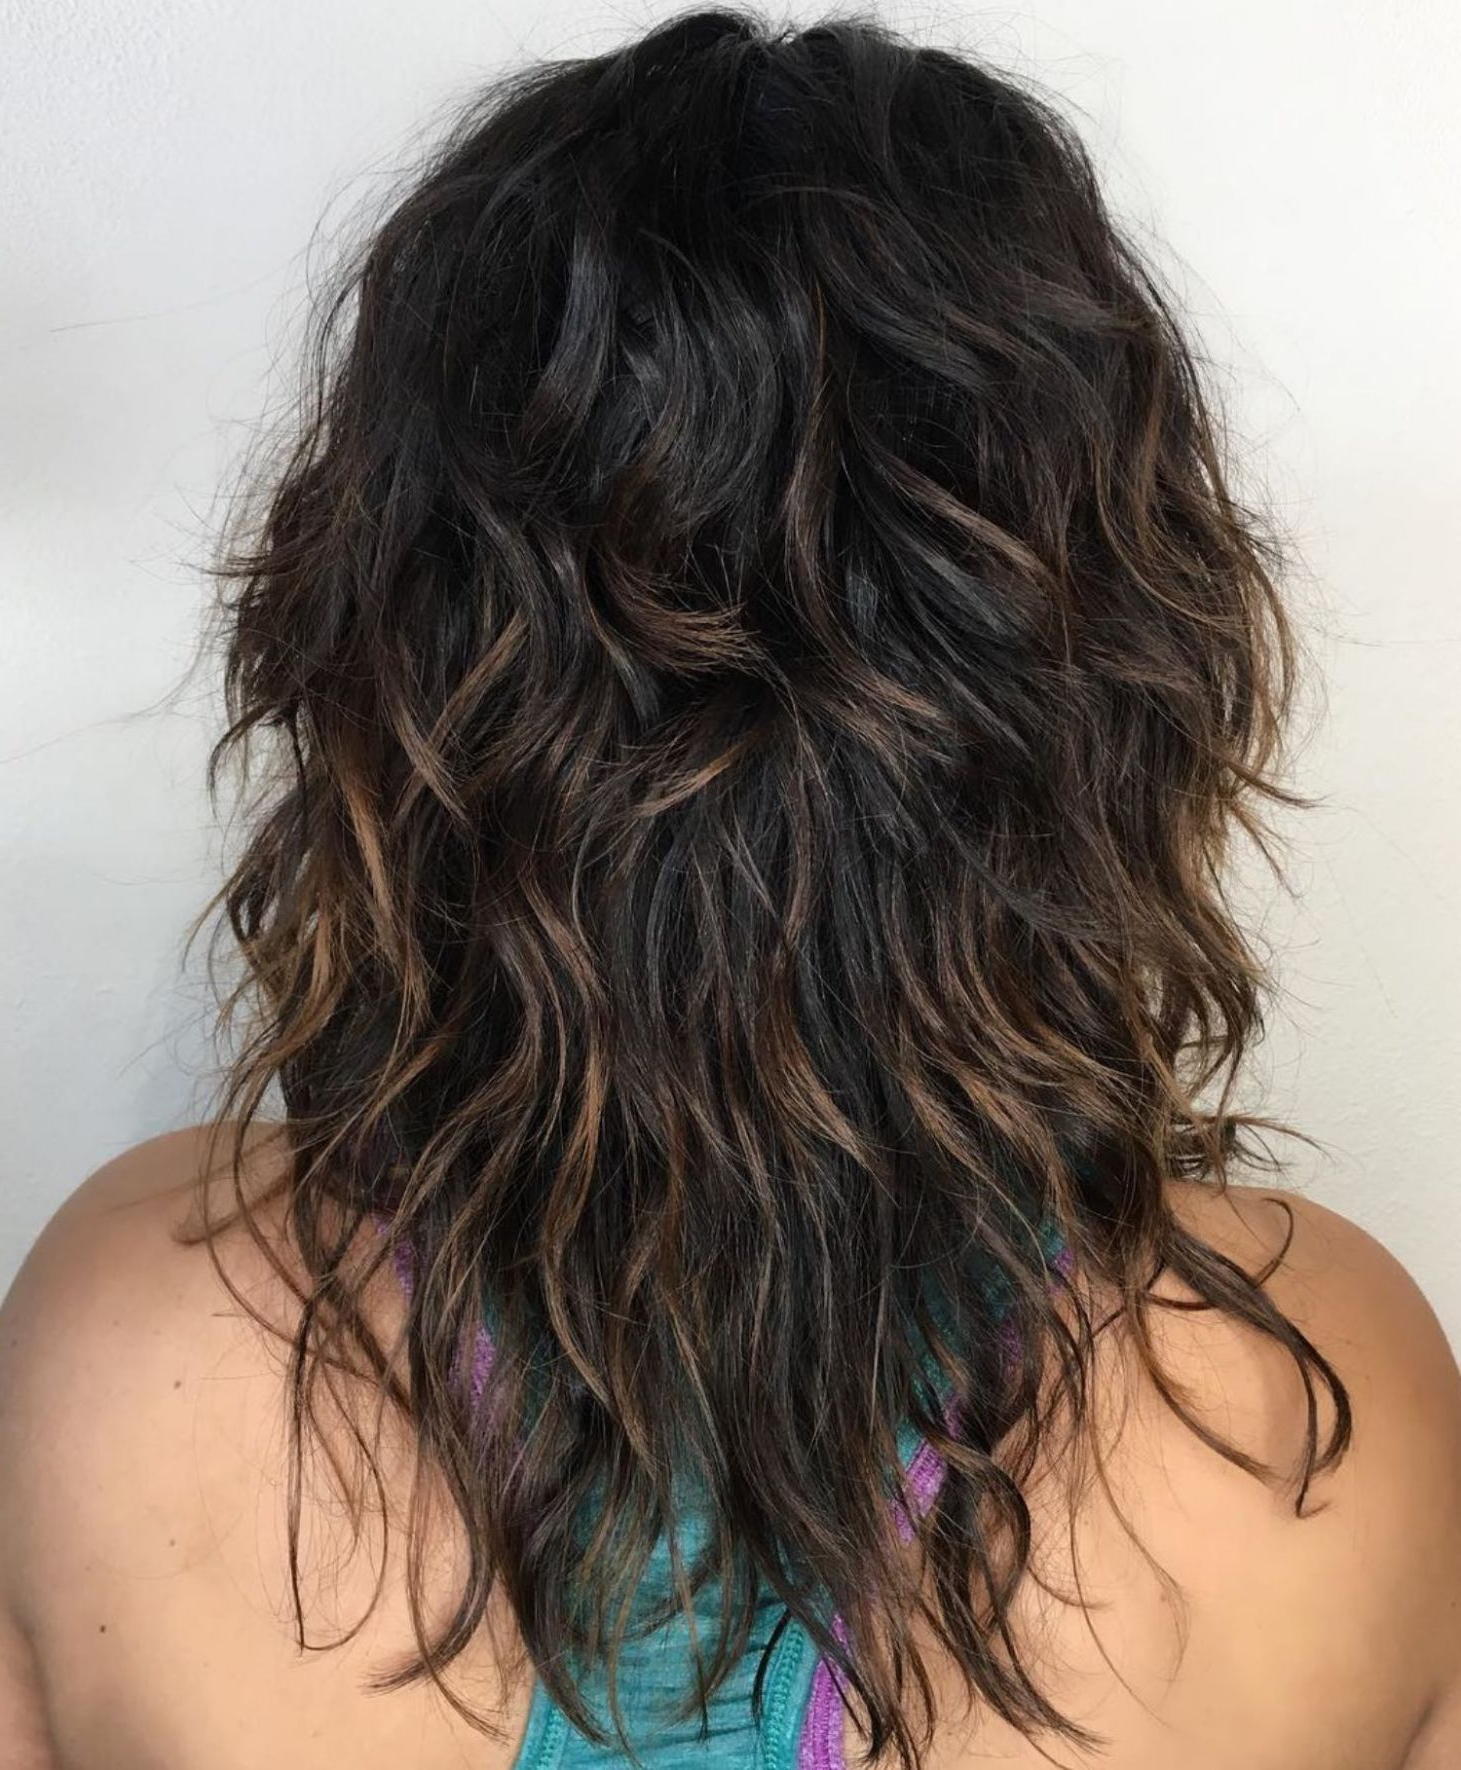 Pin On Hair With Regard To Well Known Razored Wavy Shag Haircuts With Light Bangs (View 8 of 20)